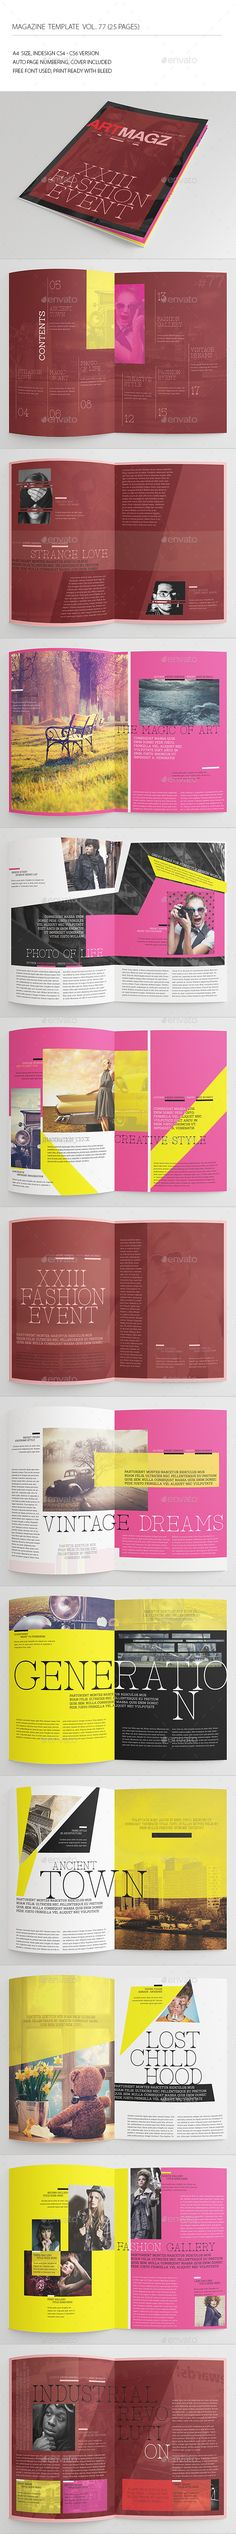 25 Pages Creative Magazine Vol77 by -BeCreative-  25 Pages Creative Magazine Vol77: This item consist of 25 pages that fully editable and customizable.Detail :25 pages Size A4 (8.